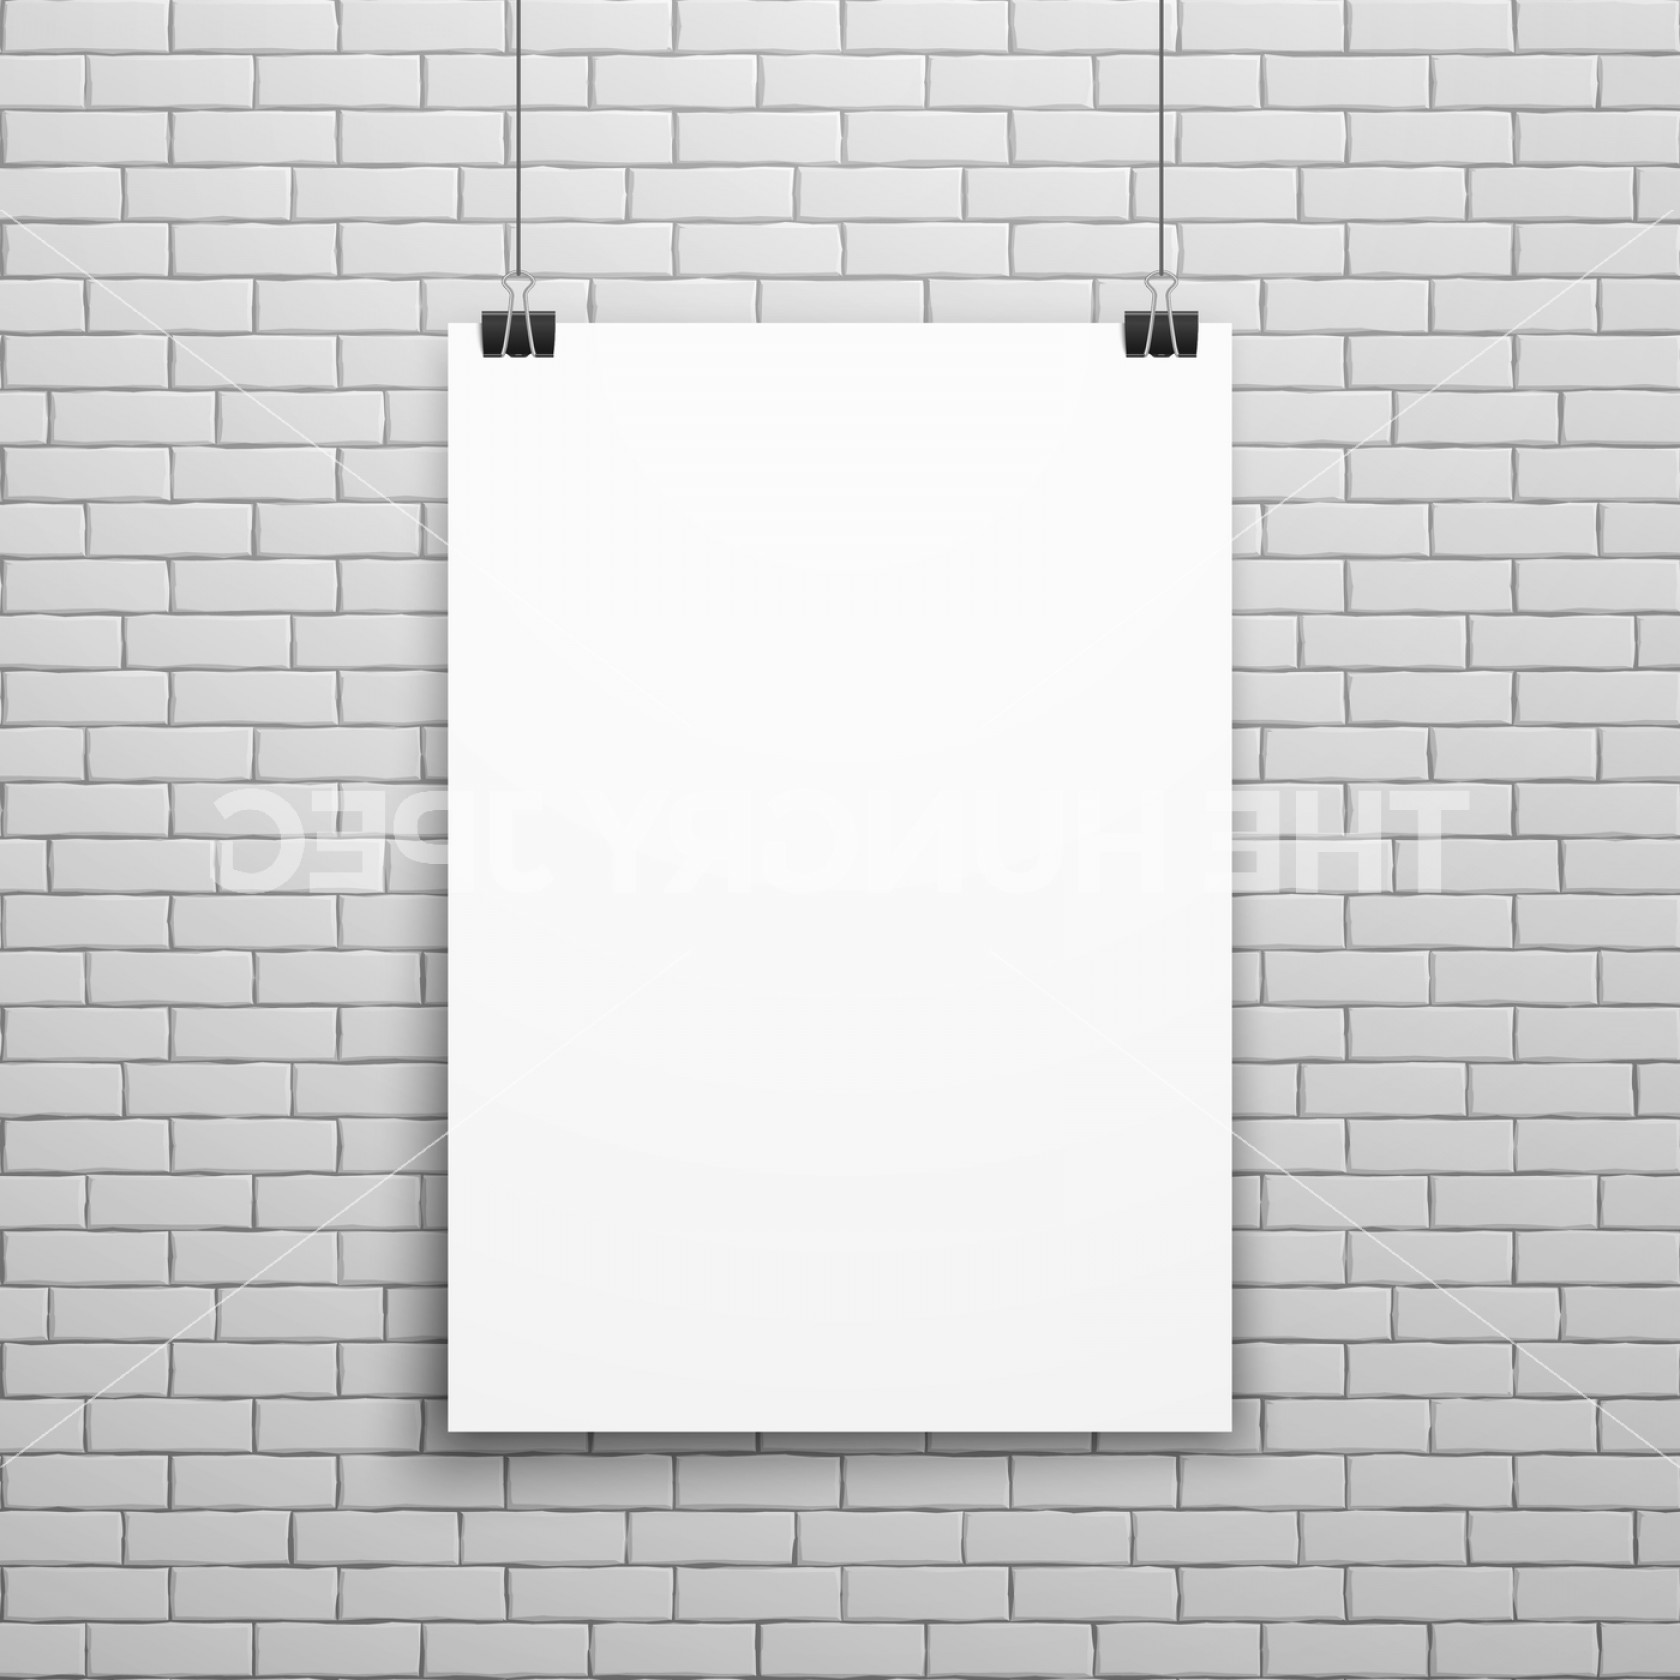 Brick Vector Ai File: Blank White Poster On Brick Wall Vector Illustration